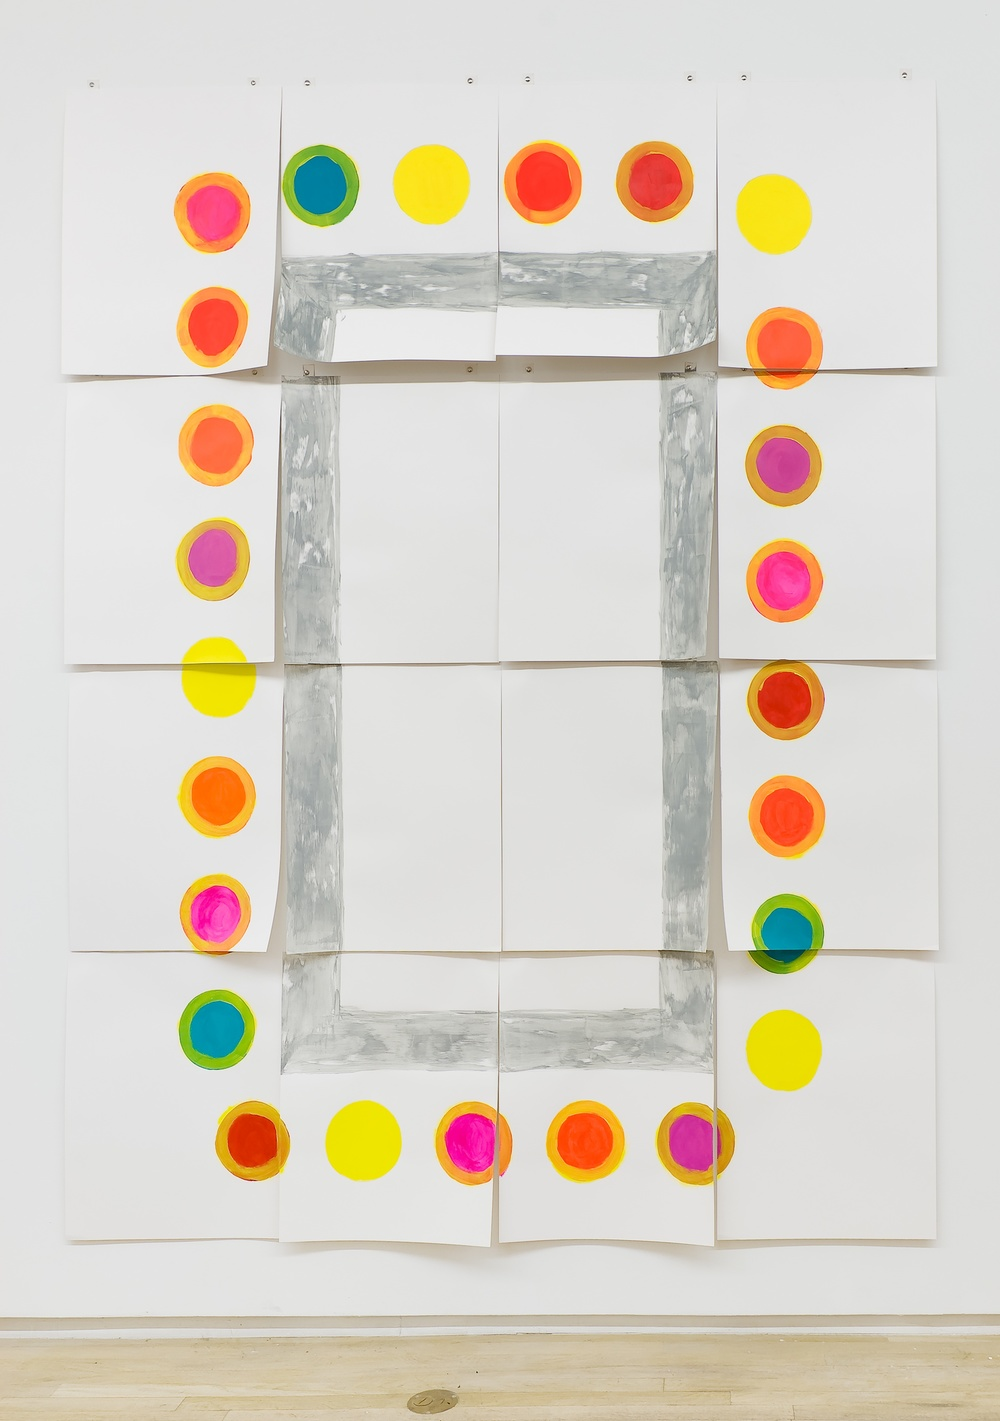 Untitled (Mirror) 2008